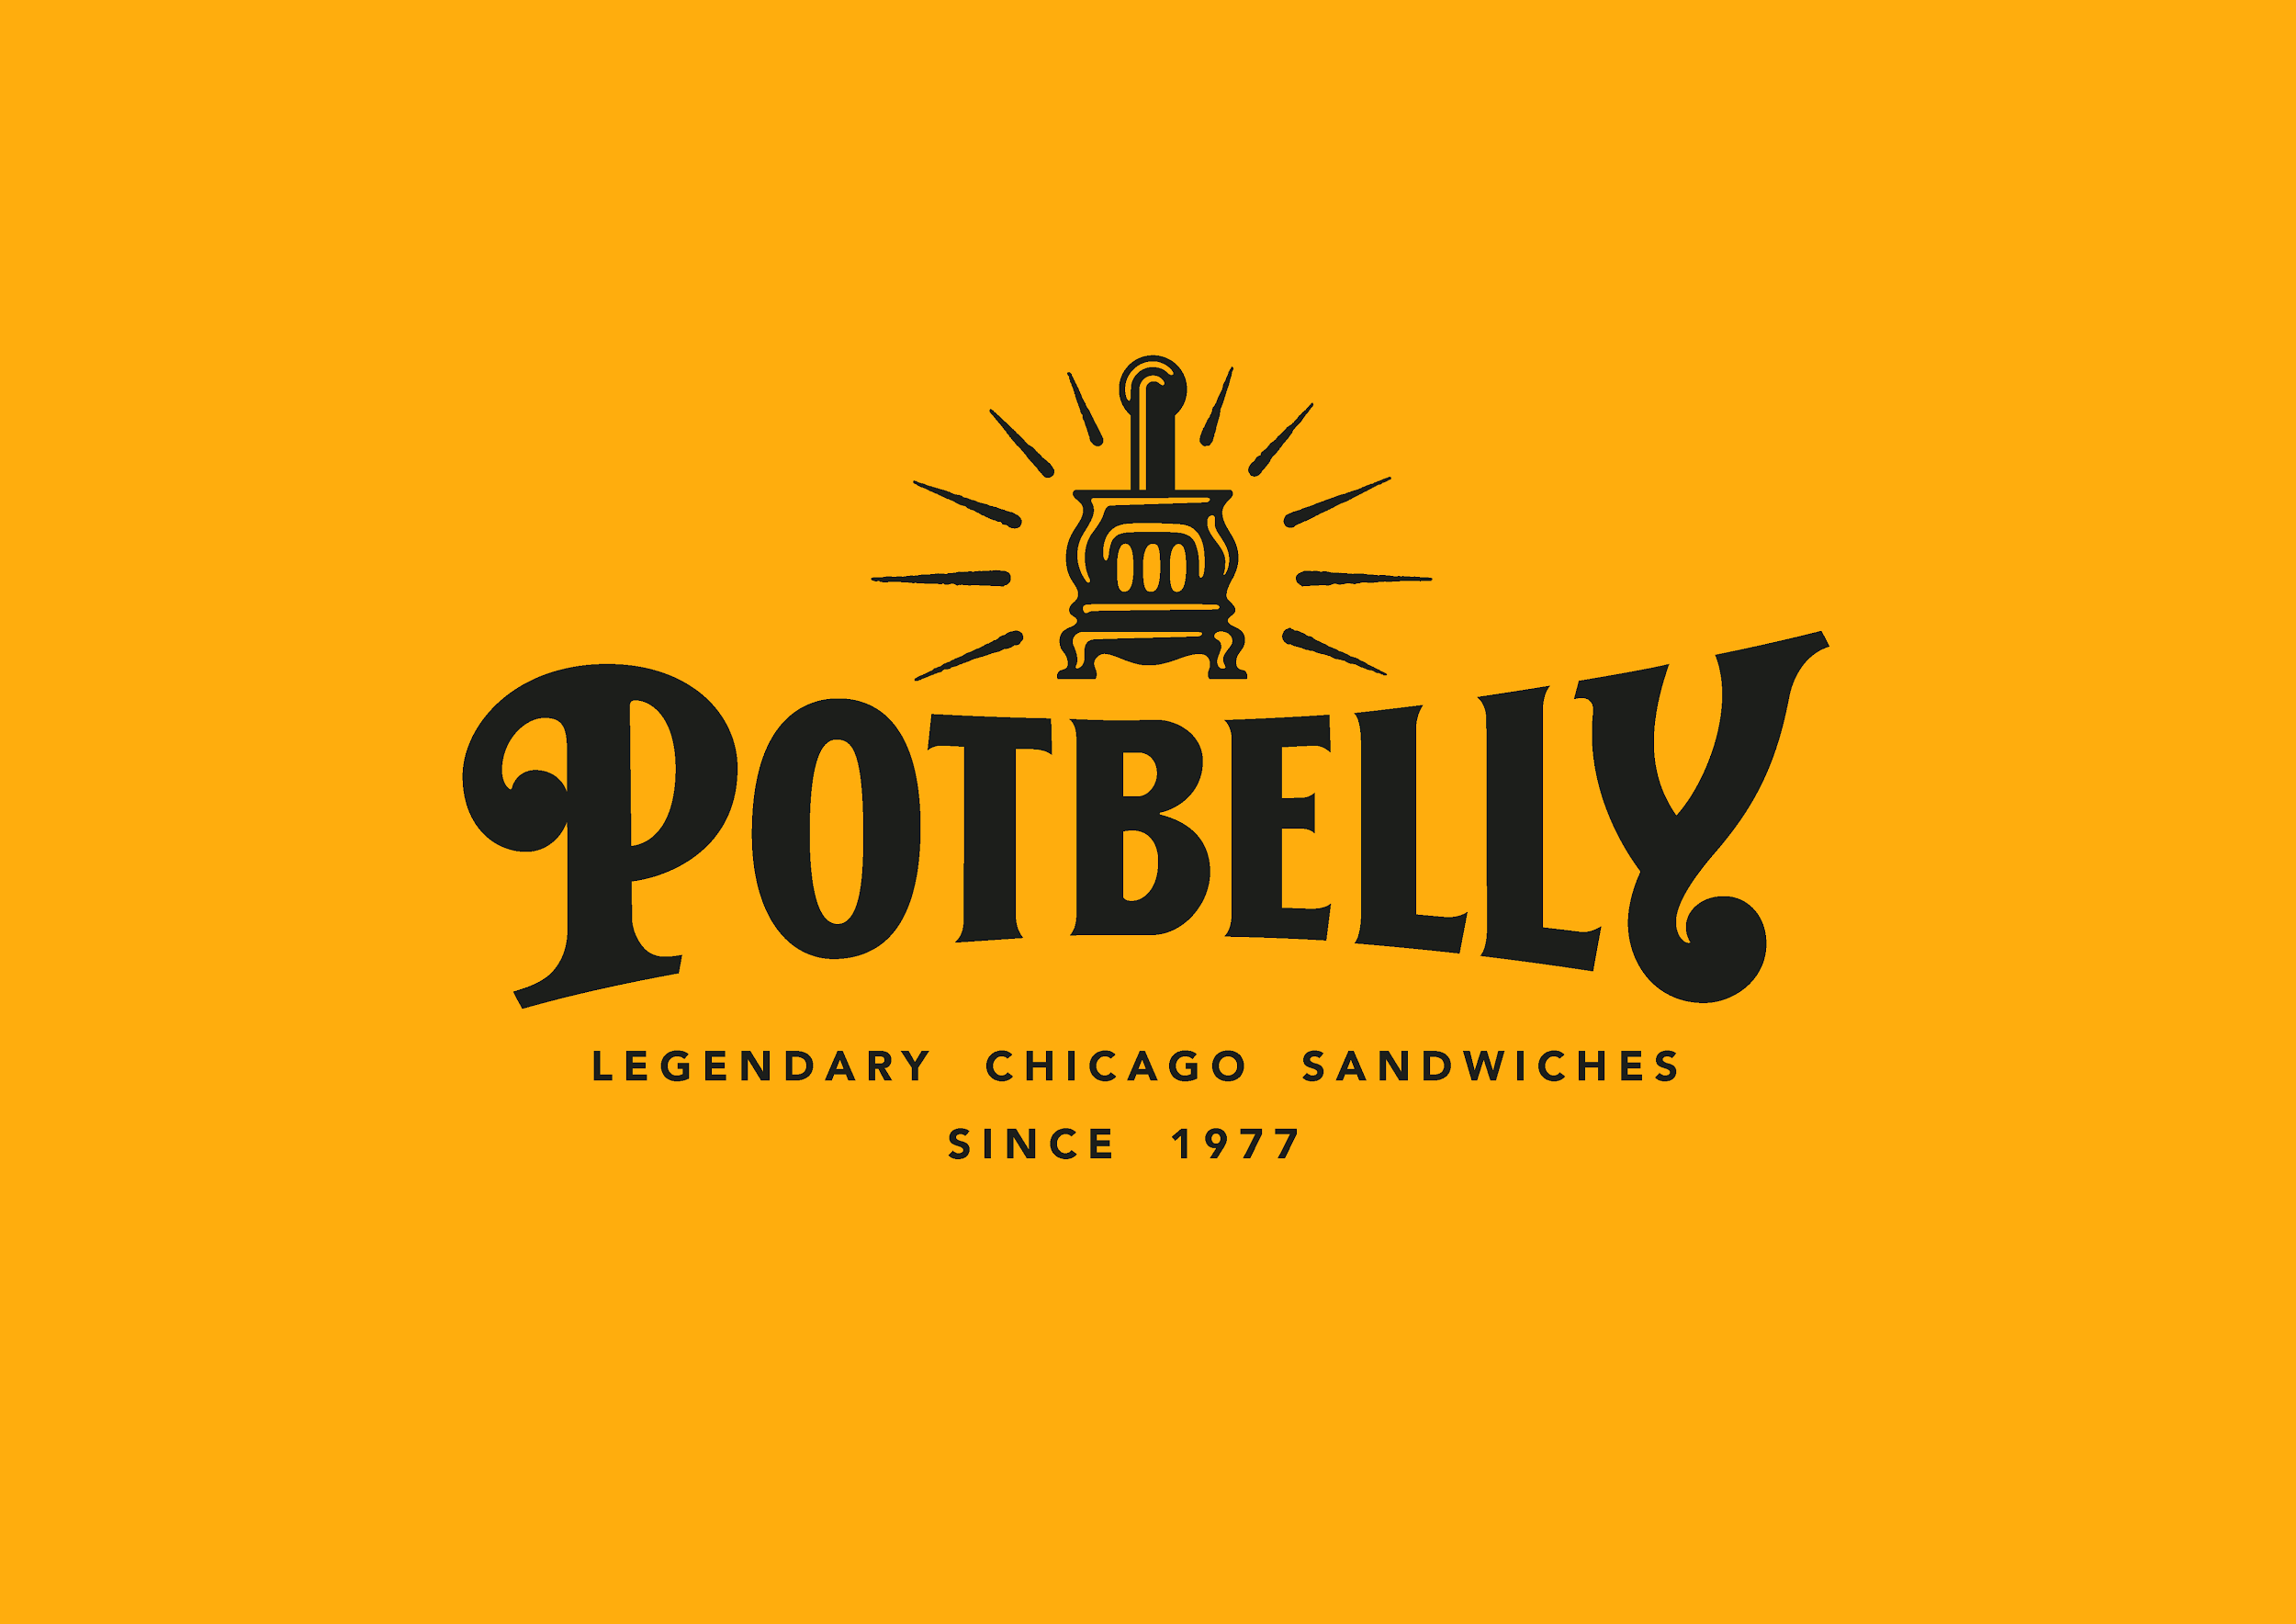 Potbelly Logo Potbelly Corporation Great Buy For Longterm Growth  Potbelly